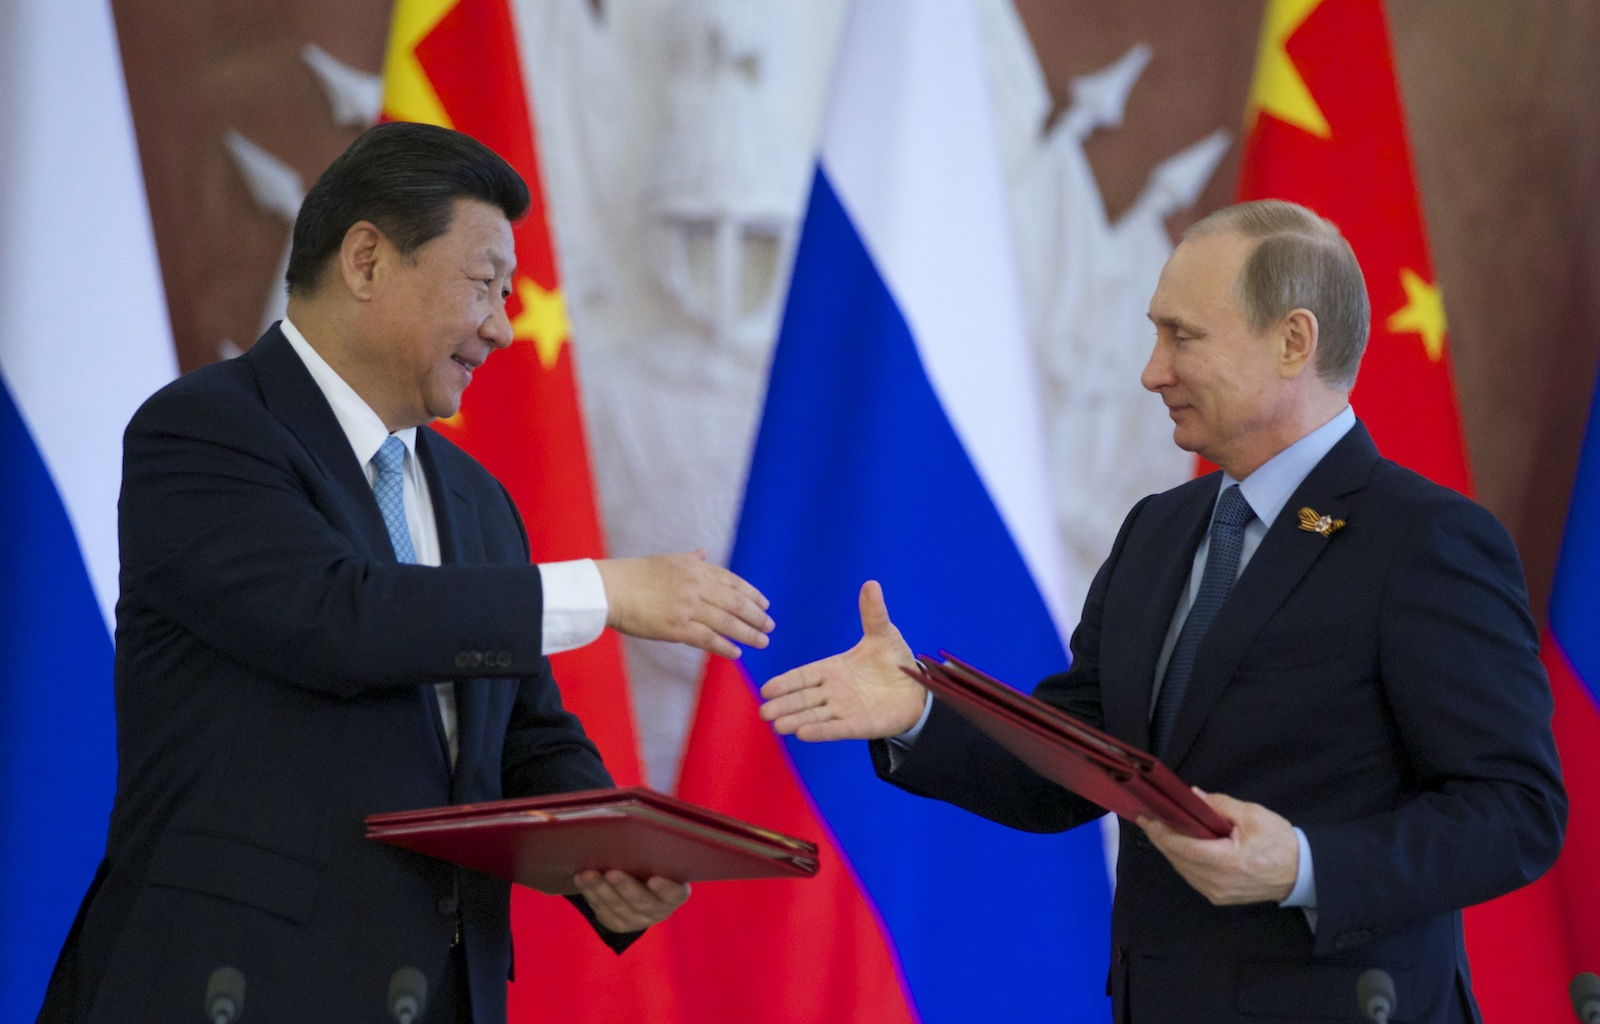 Russian President Vladimir Putin, right, and Chinese President Xi Jinping exchange documents at the signing ceremony in the Kremlin in Moscow in a file photo. Image: Pool / Agencies